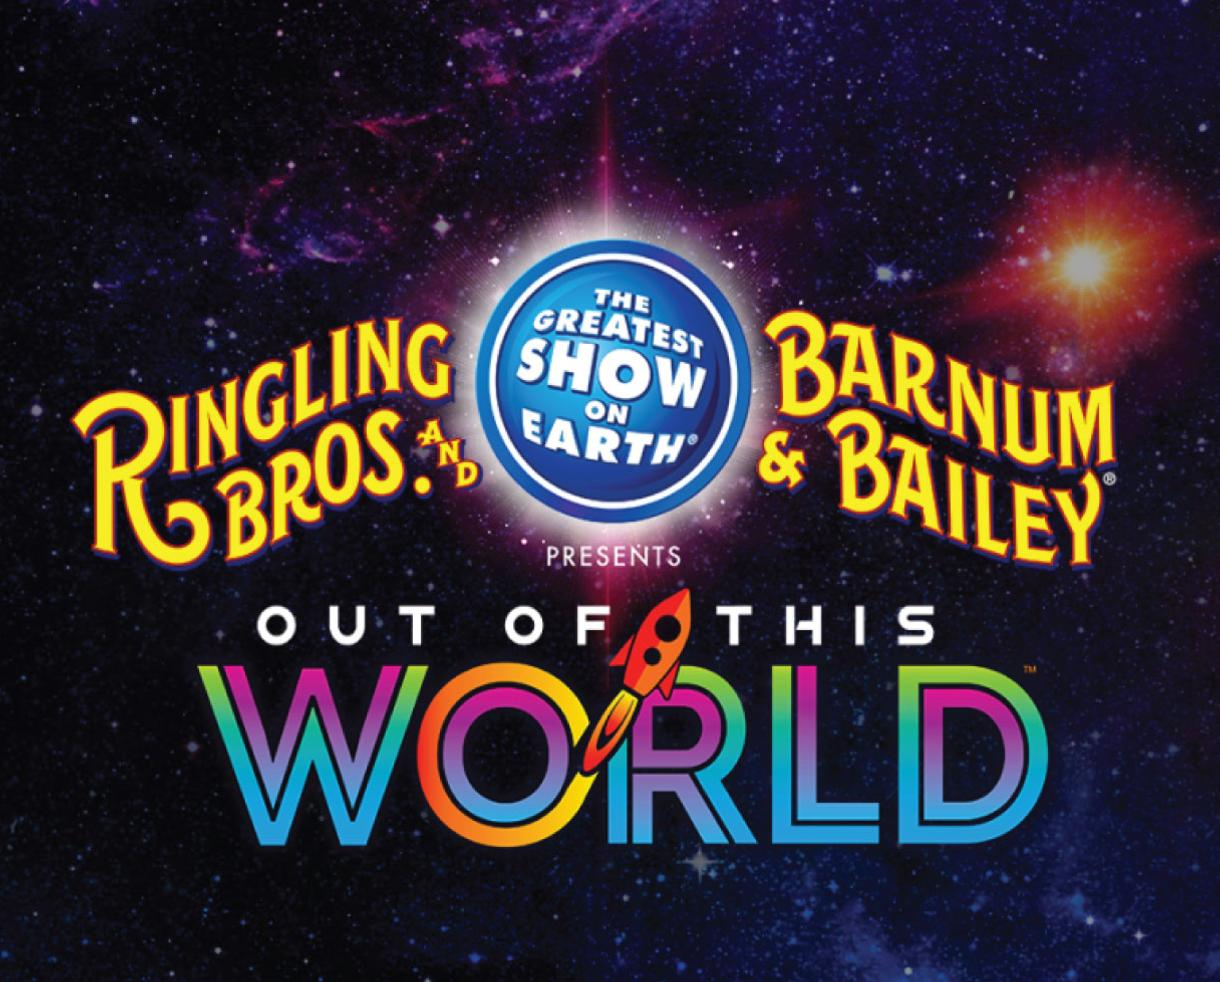 Enter to Win a Once-in-A-Lifetime VIP Ringling Bros. Circus Experience!